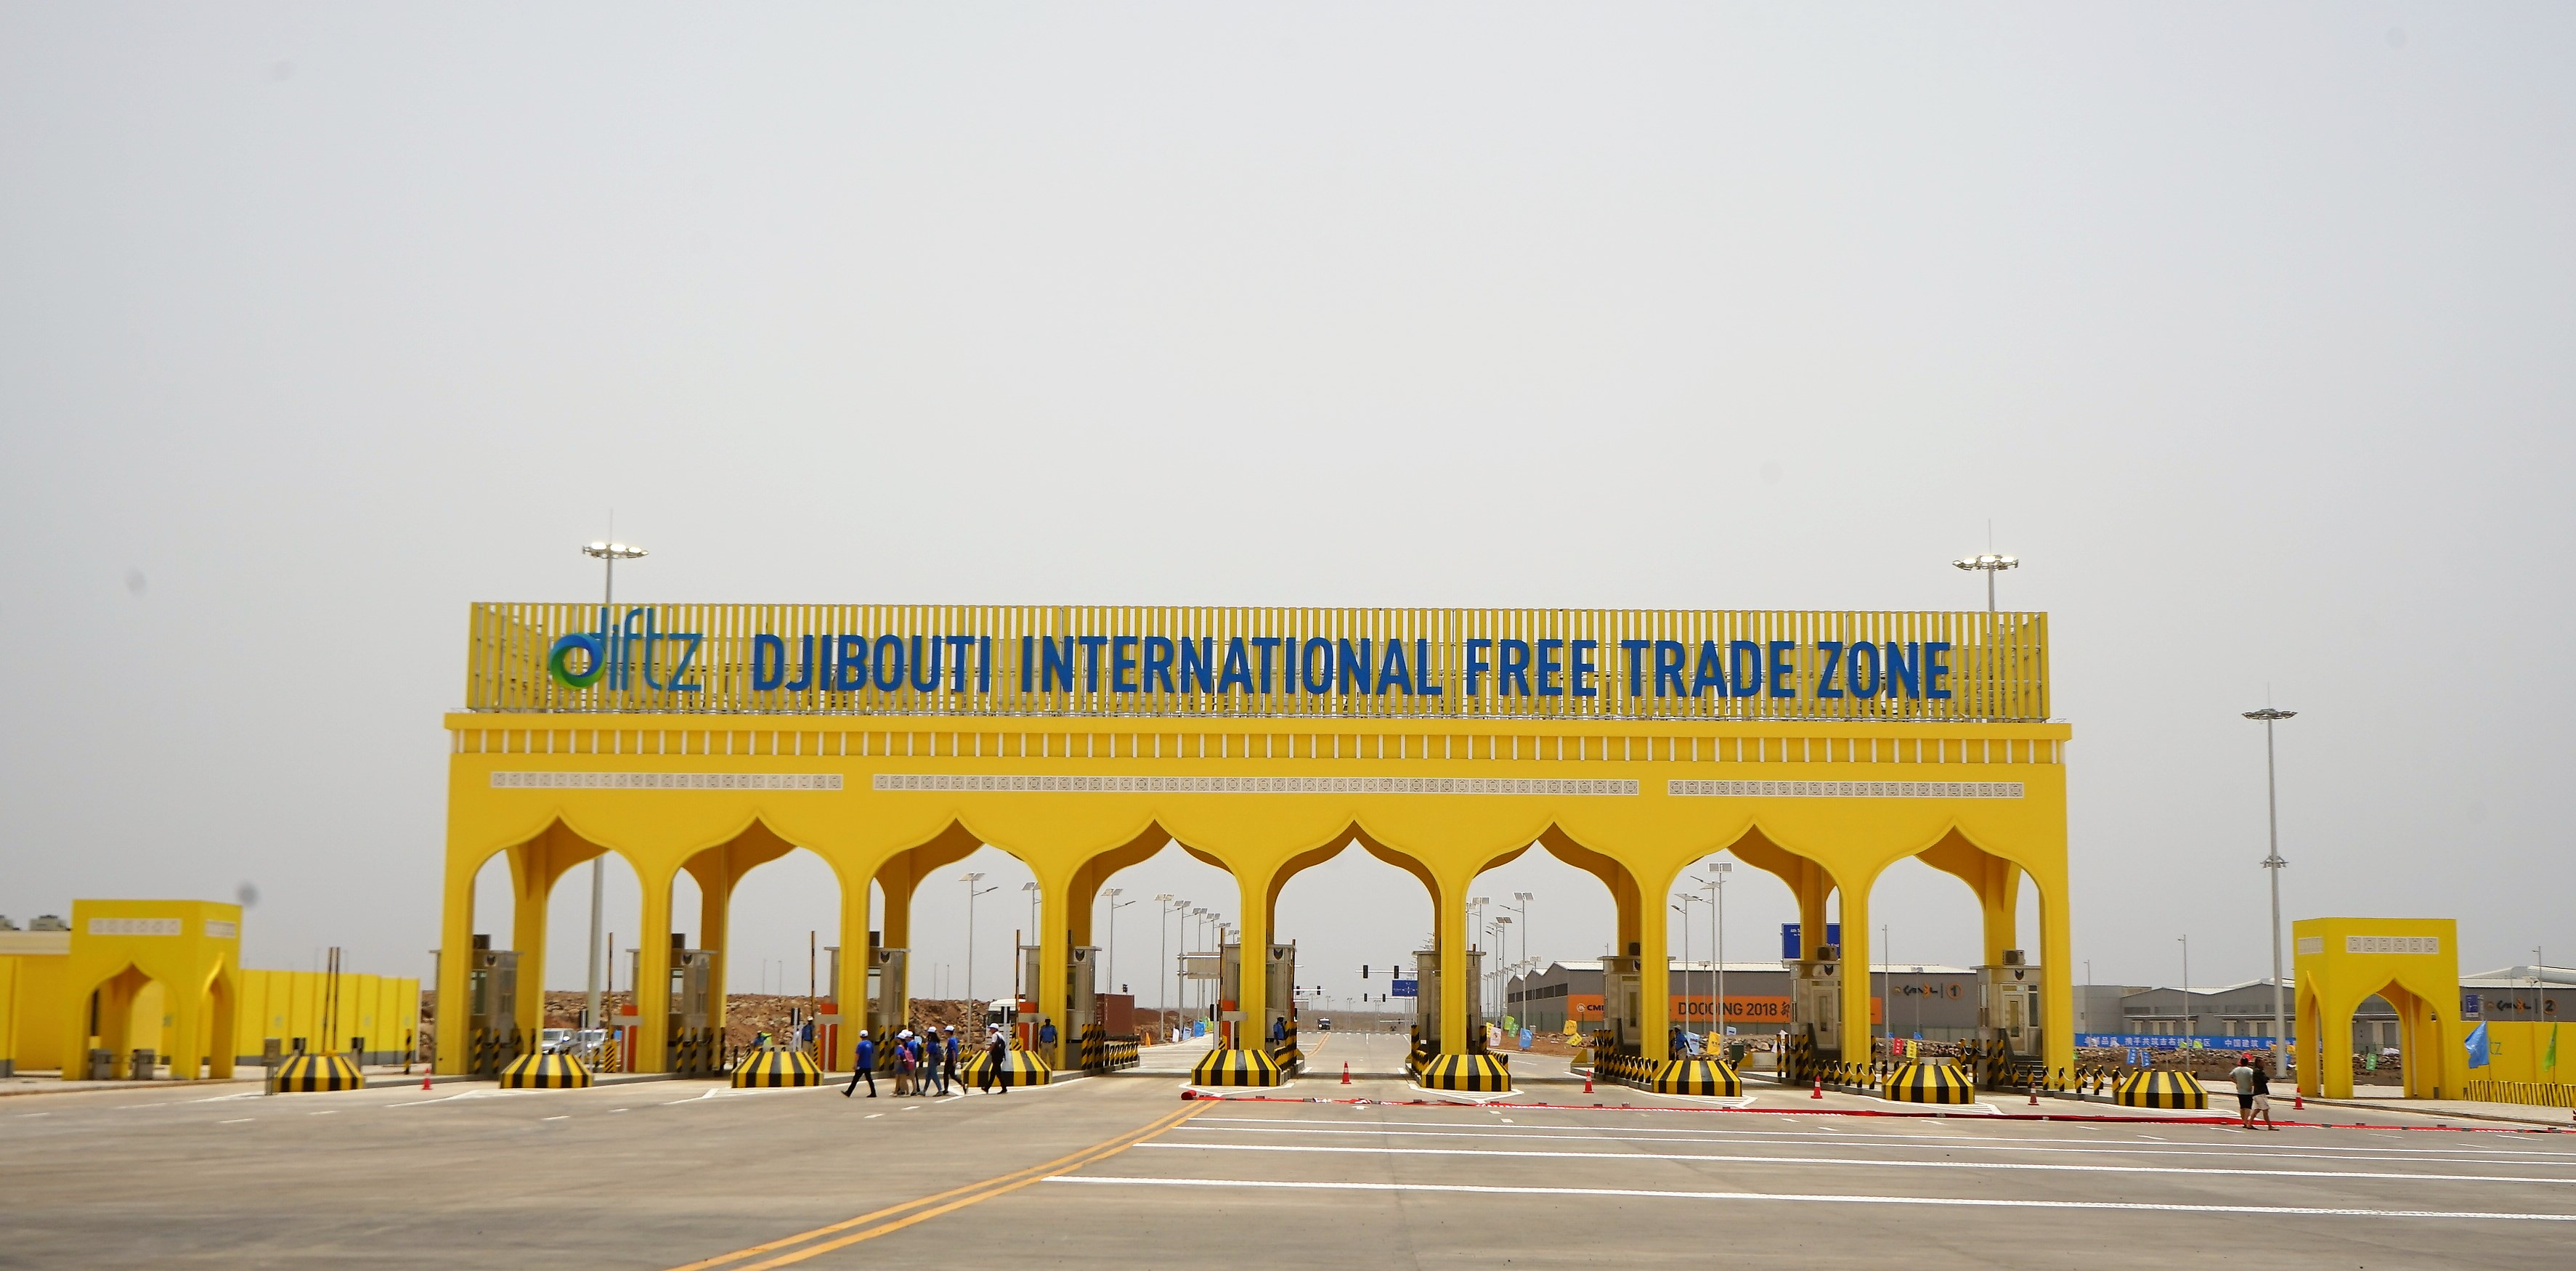 https://cms.qz.com/wp-content/uploads/2018/07/DIFTZ_DPFZA_@Djibouti-Port-and-Free-Trade-Zone-Authority-DSC02798.jpg?quality=75&strip=all&w=940